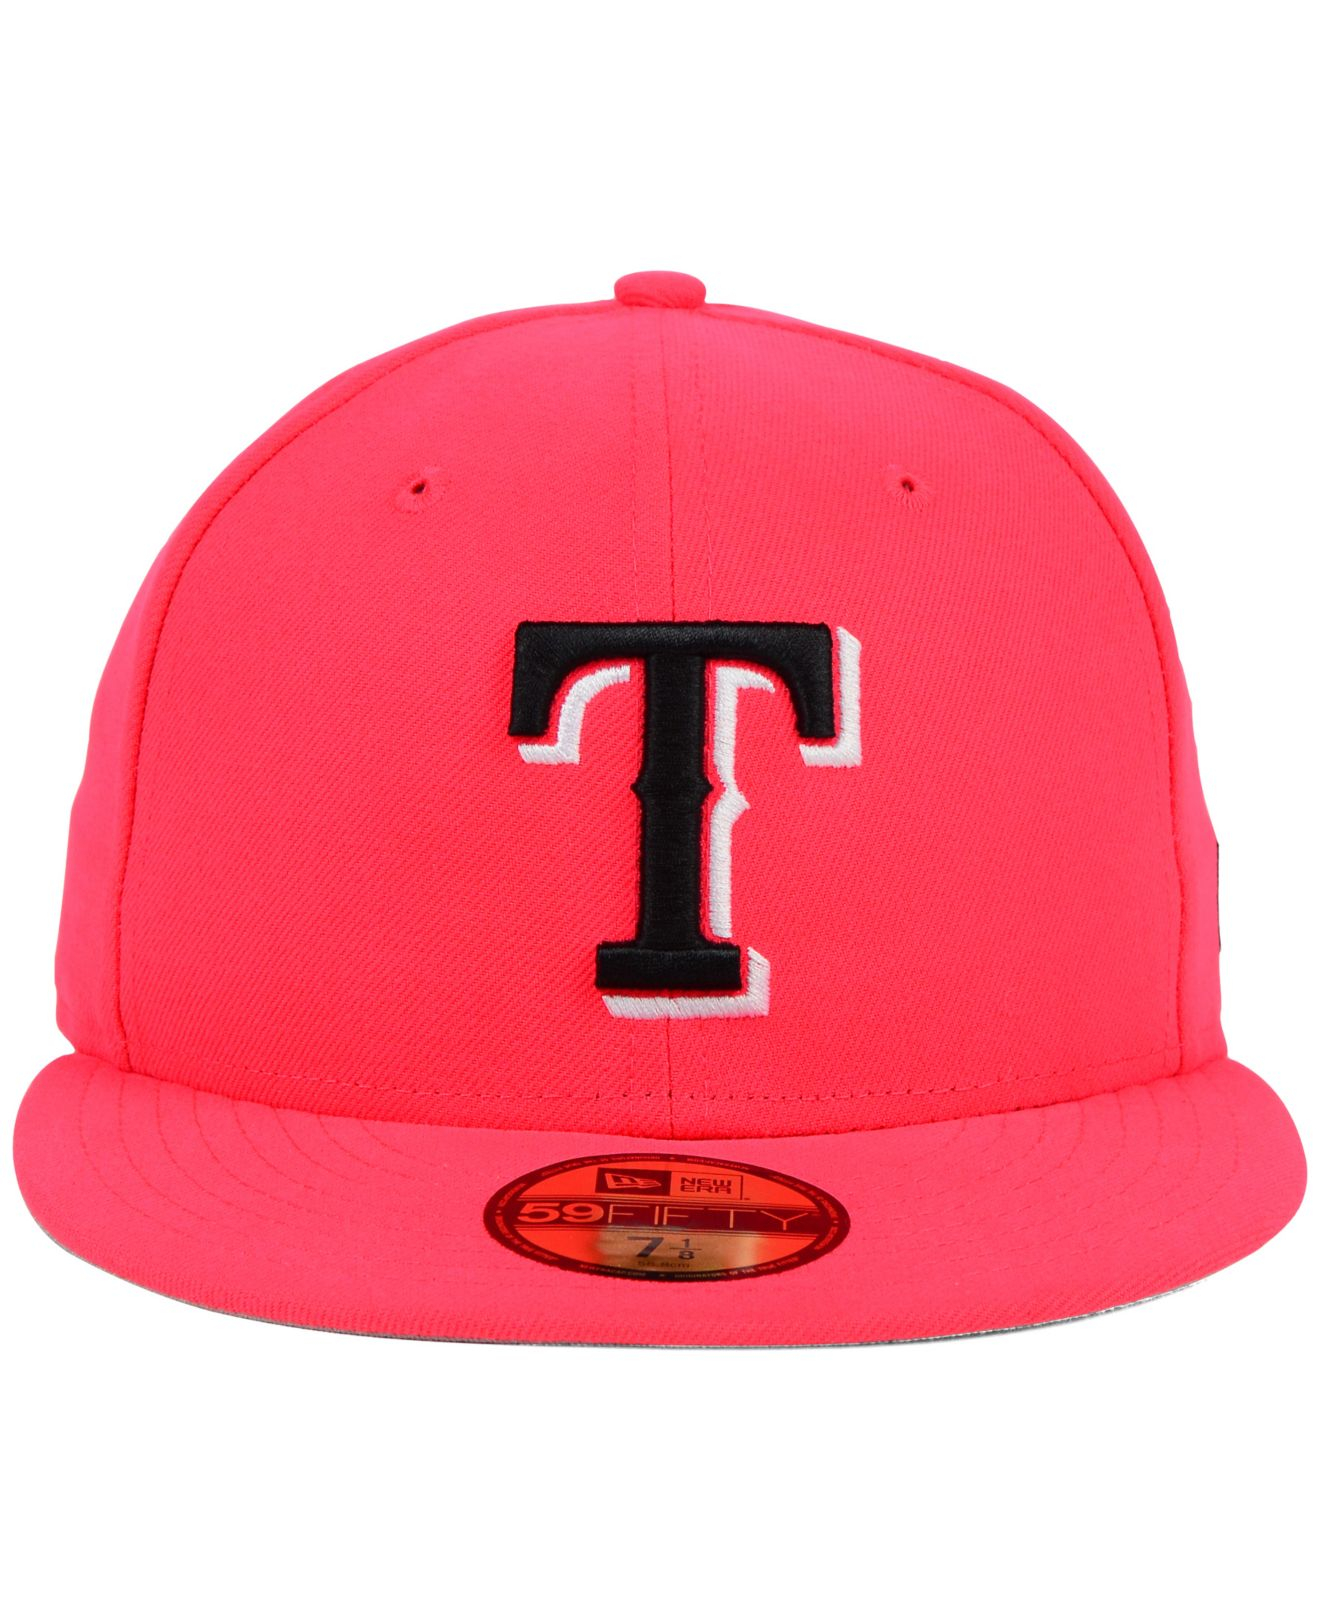 finest selection cdab3 1b5b7 KTZ Texas Rangers C-dub 59fifty Cap in Red for Men - Lyst